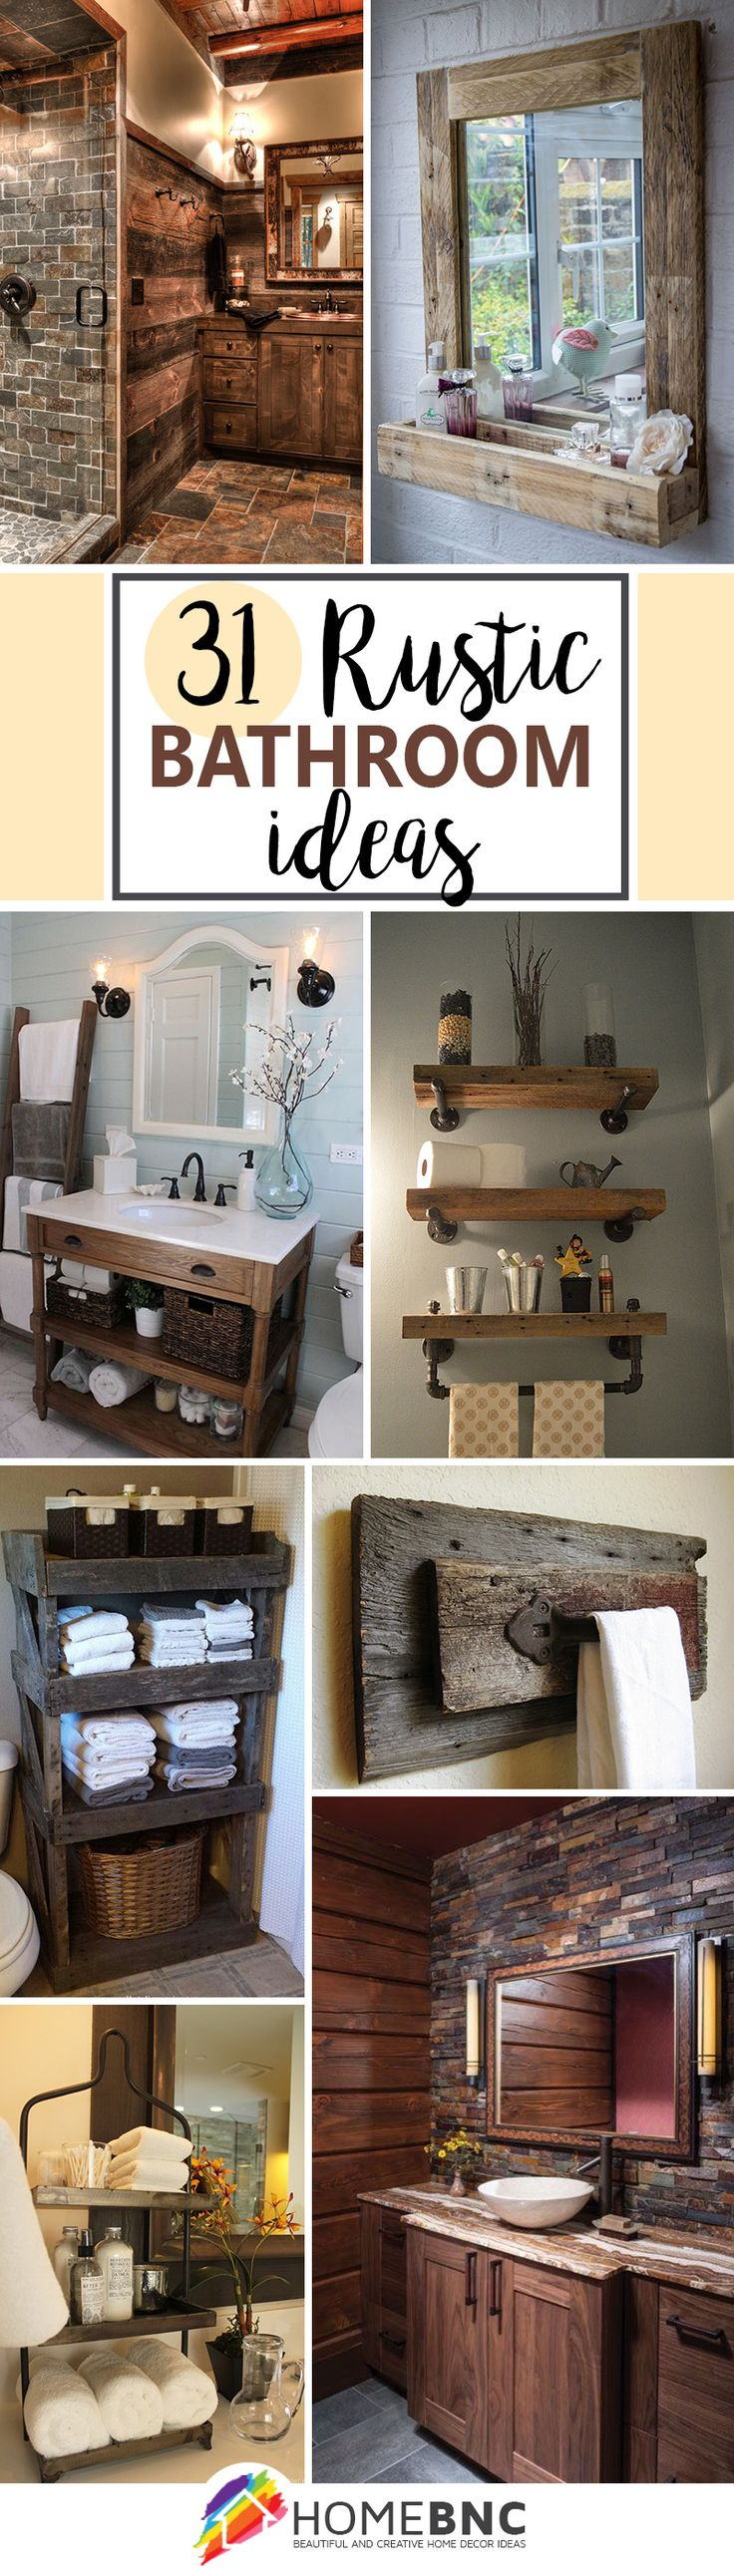 Best Cabin Bathroom Decor Ideas On Pinterest Small Cabin - Best bathroom faucets to buy for bathroom decor ideas